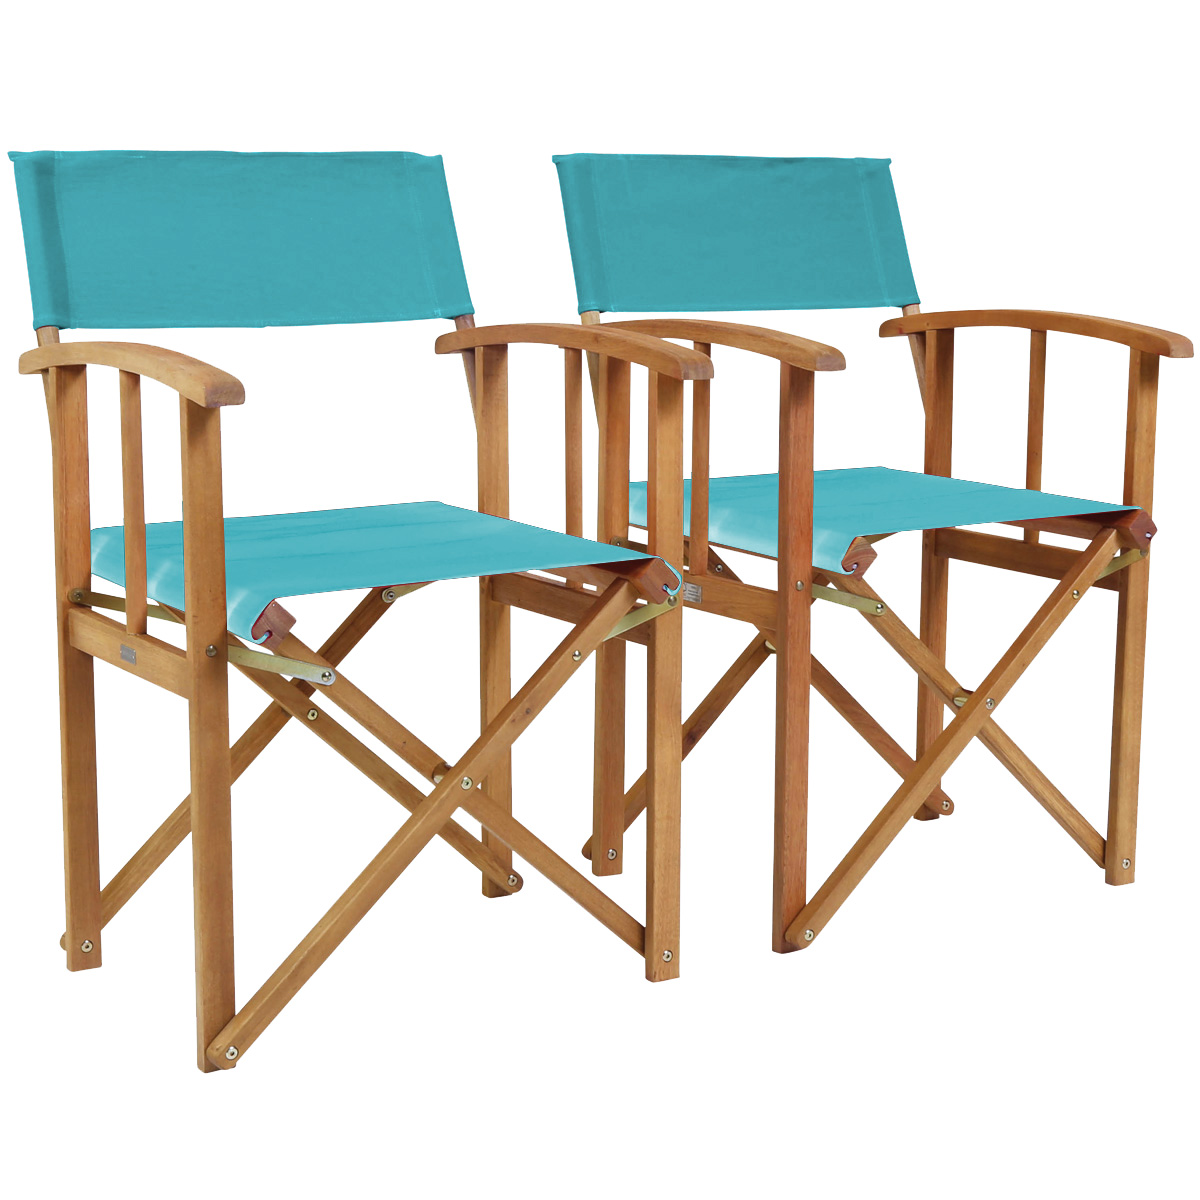 Wooden Directors Chairs charles bentley pair of folding wooden directors chairs fsc